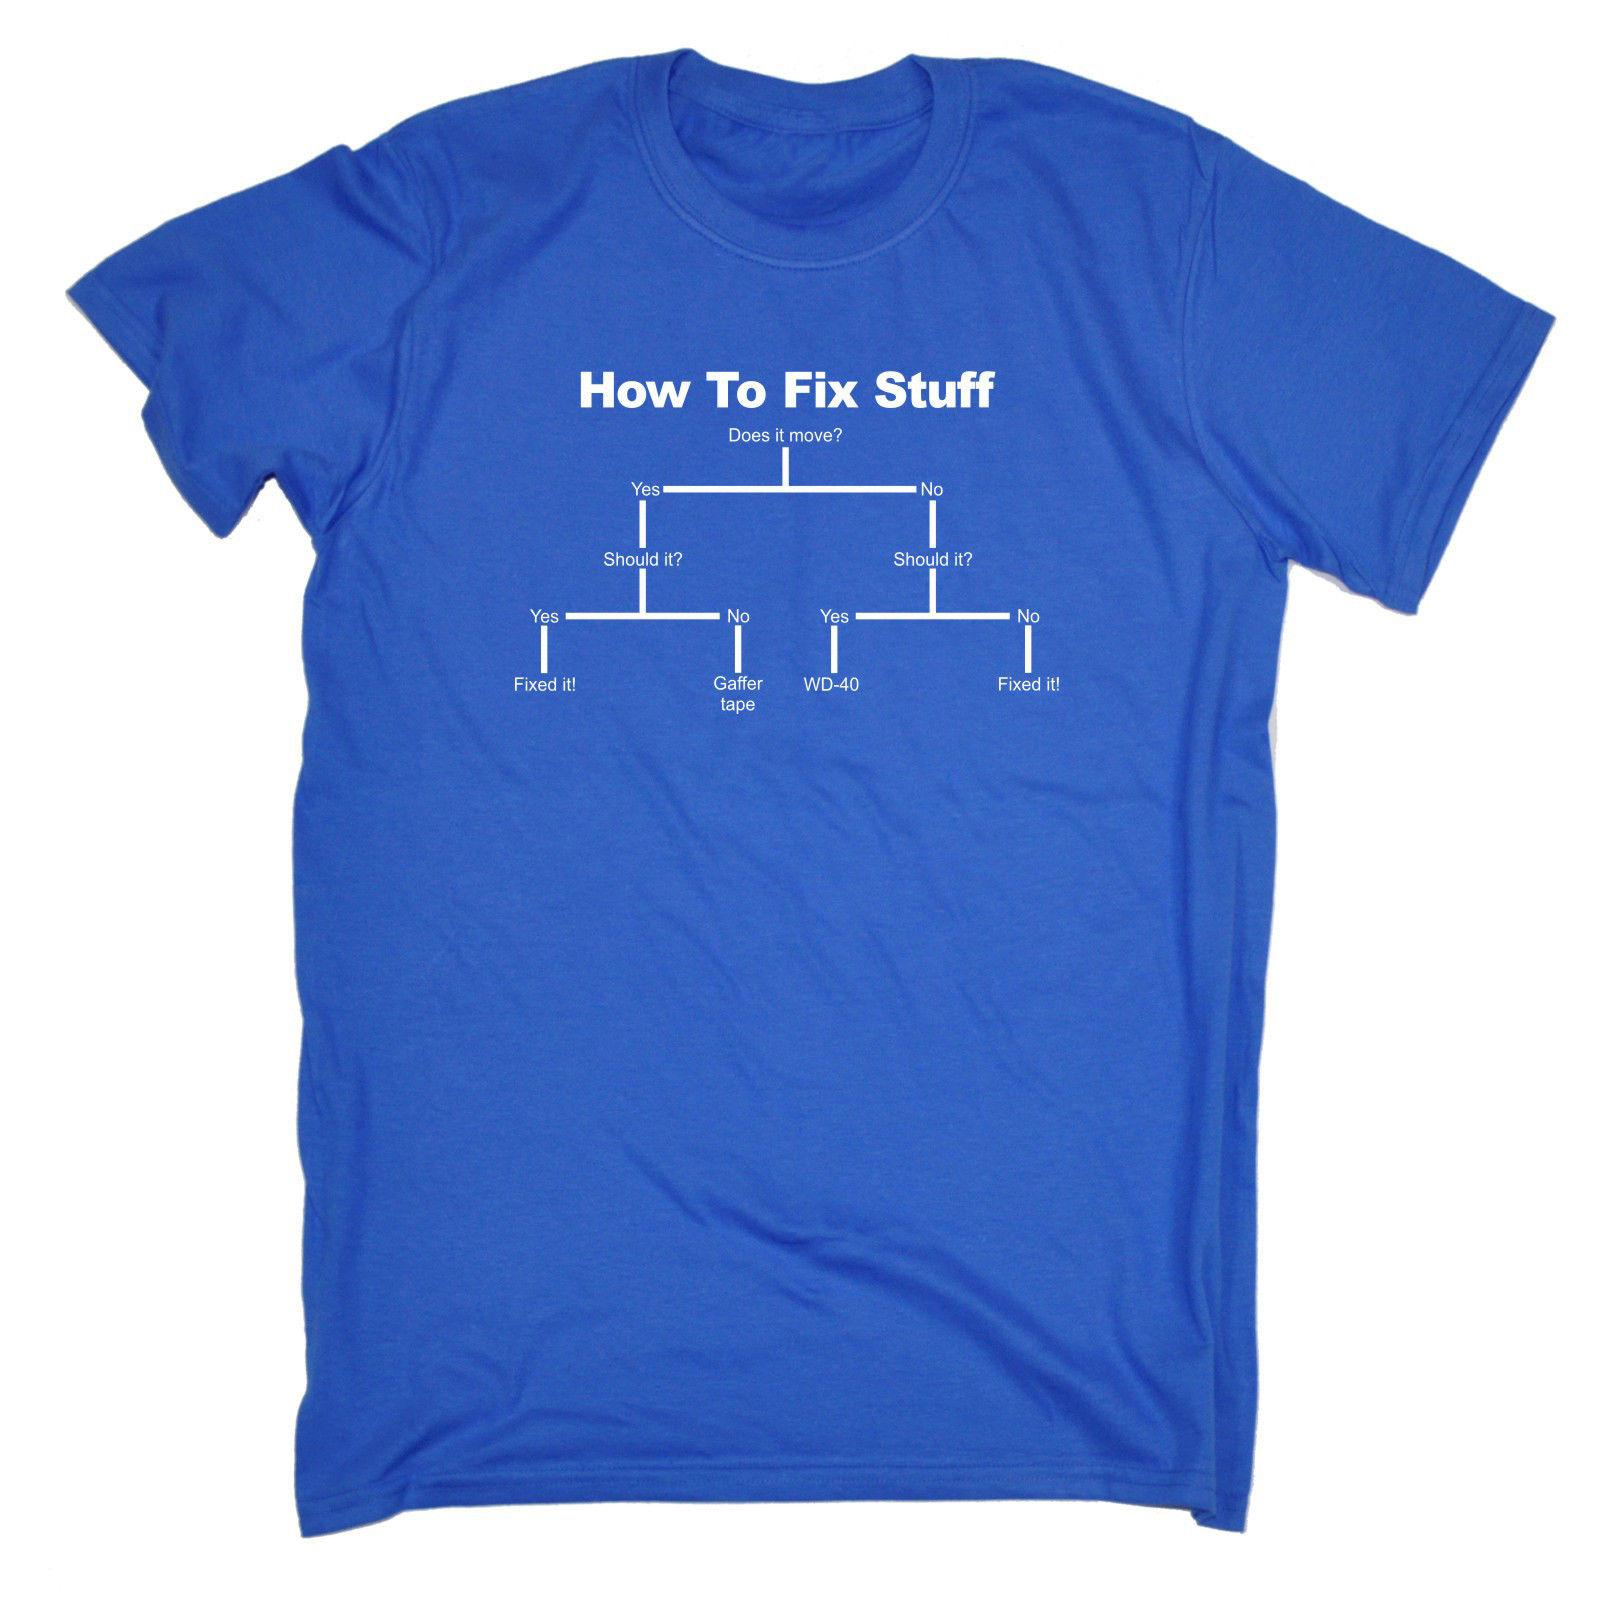 4230ac295f How To Fix Stuff T SHIRT Tee Him Diy Engineer Builder Funny Birthday Gift  Funny Casual Tee The Following T Shirts This T Shirt From Fatcuckoo, ...